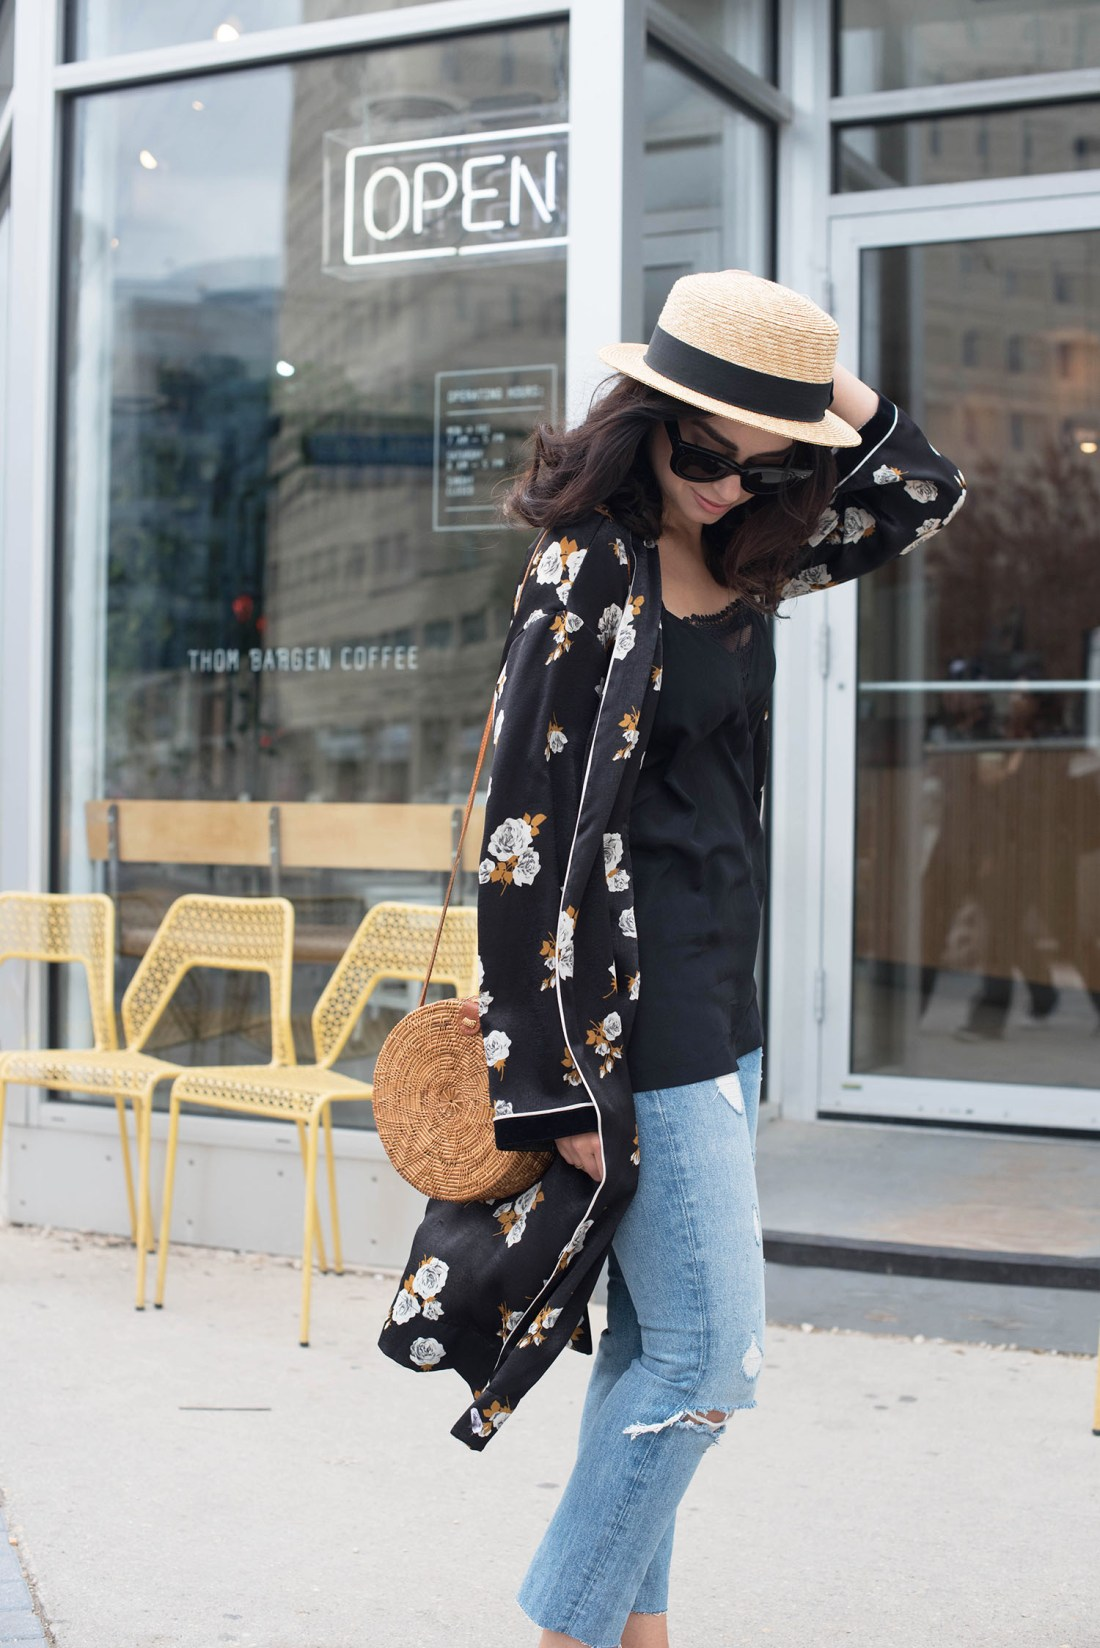 Fashion blogger Cee Fardoe of Coco & Vera holds onto her straw hat outside Thom Bargan coffee, wearing Grlfrnd Karolina jeans and a Zara black kimono